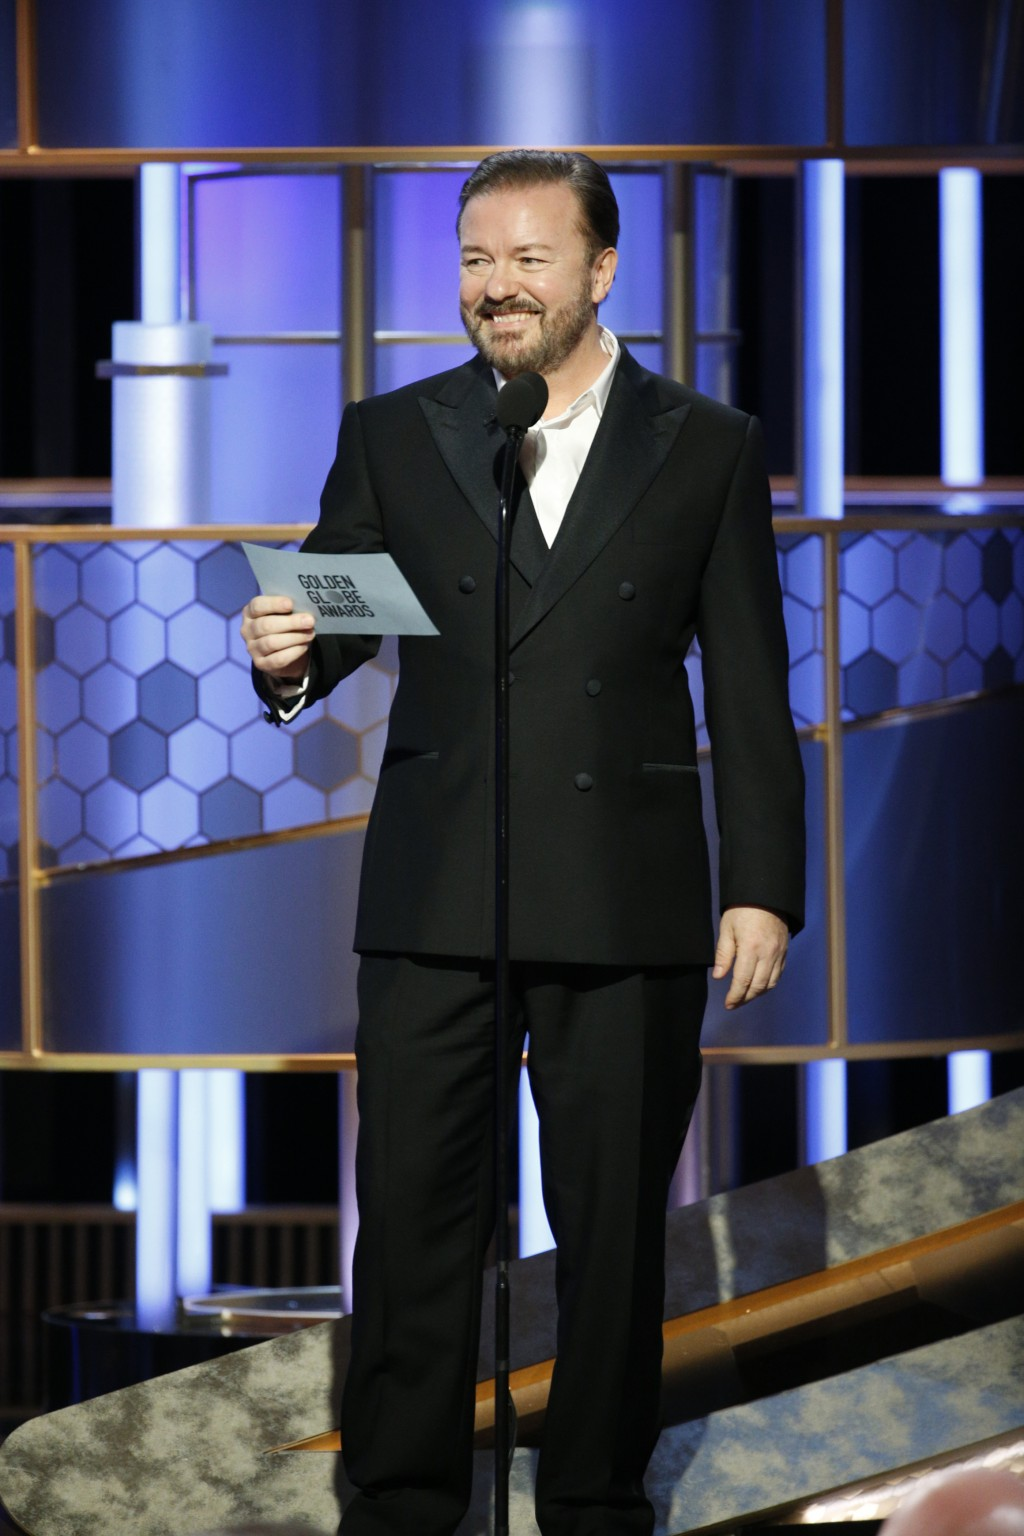 This image released by NBC shows host Ricky Gervais at the 77th Annual Golden Globe Awards at the Beverly Hilton Hotel in Beverly Hills, Calif., on Su...